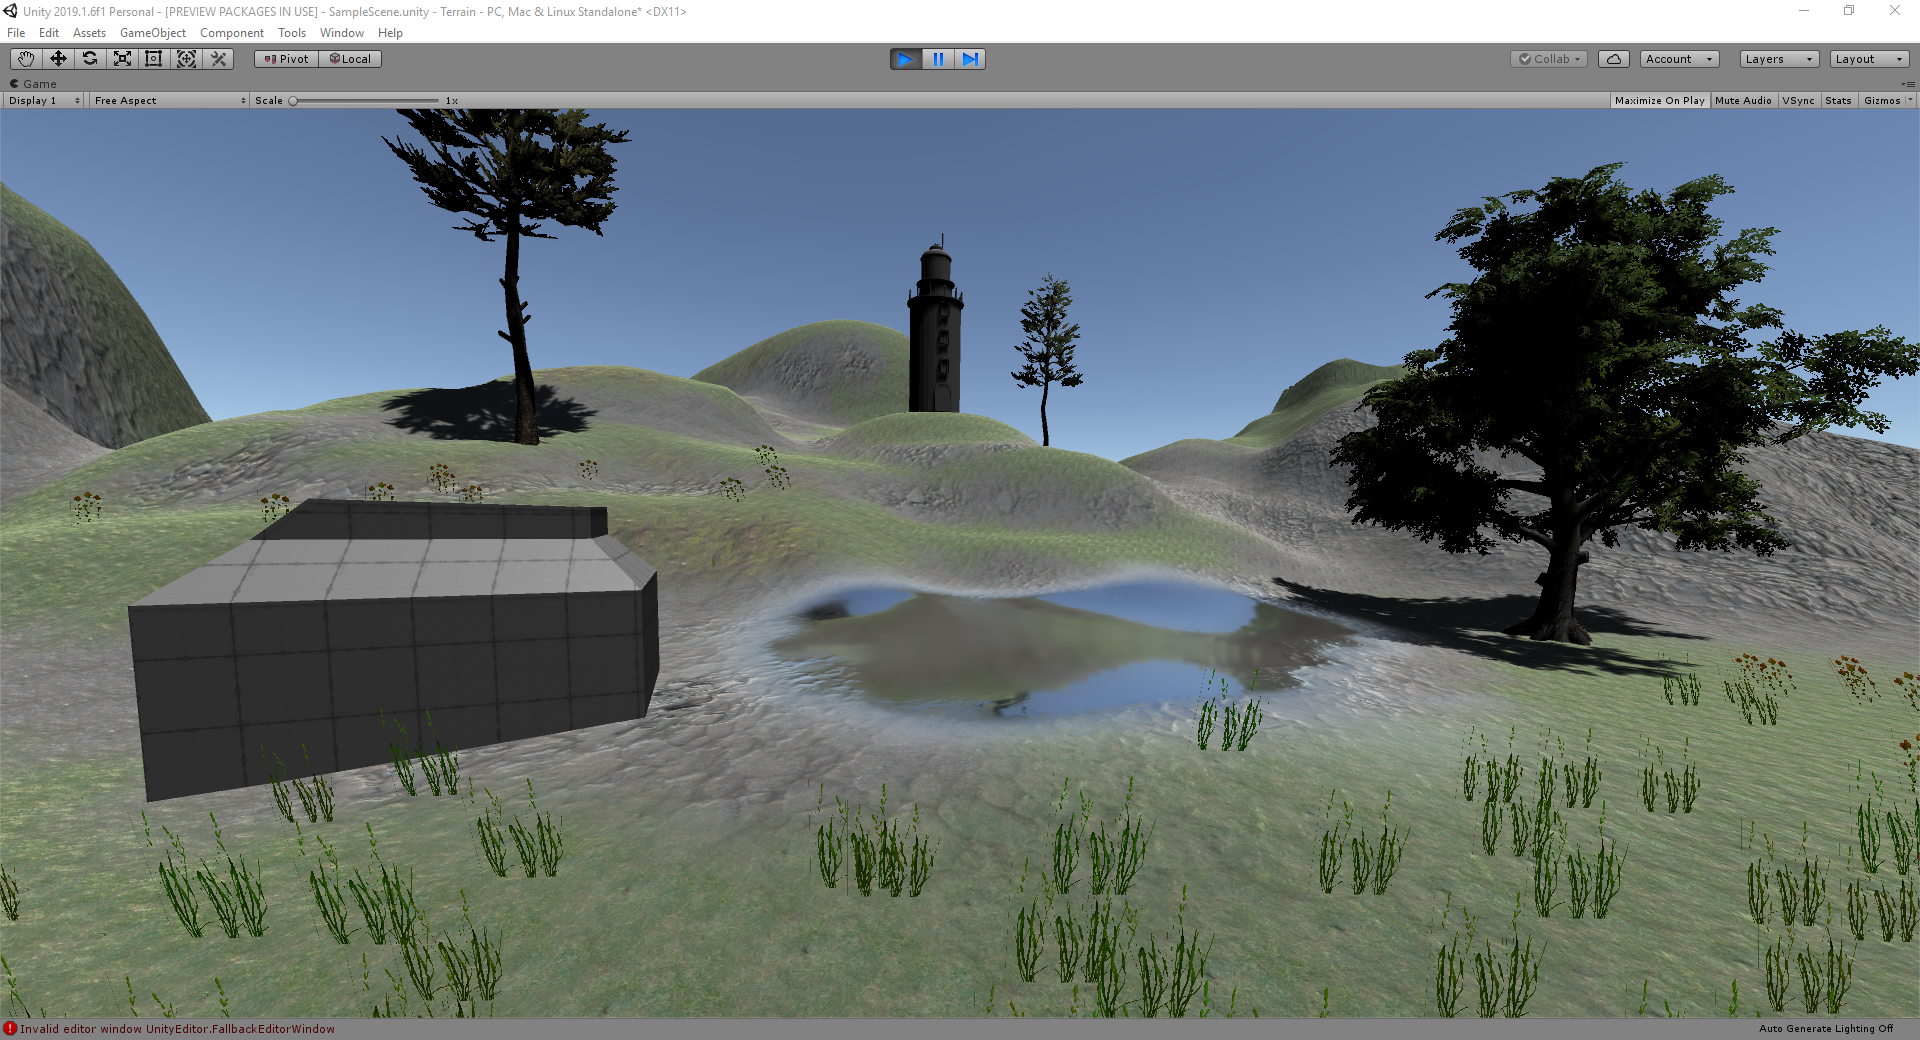 Unity Terrain and Pro Builder - UTAS KIT207 Portfolio by Sam